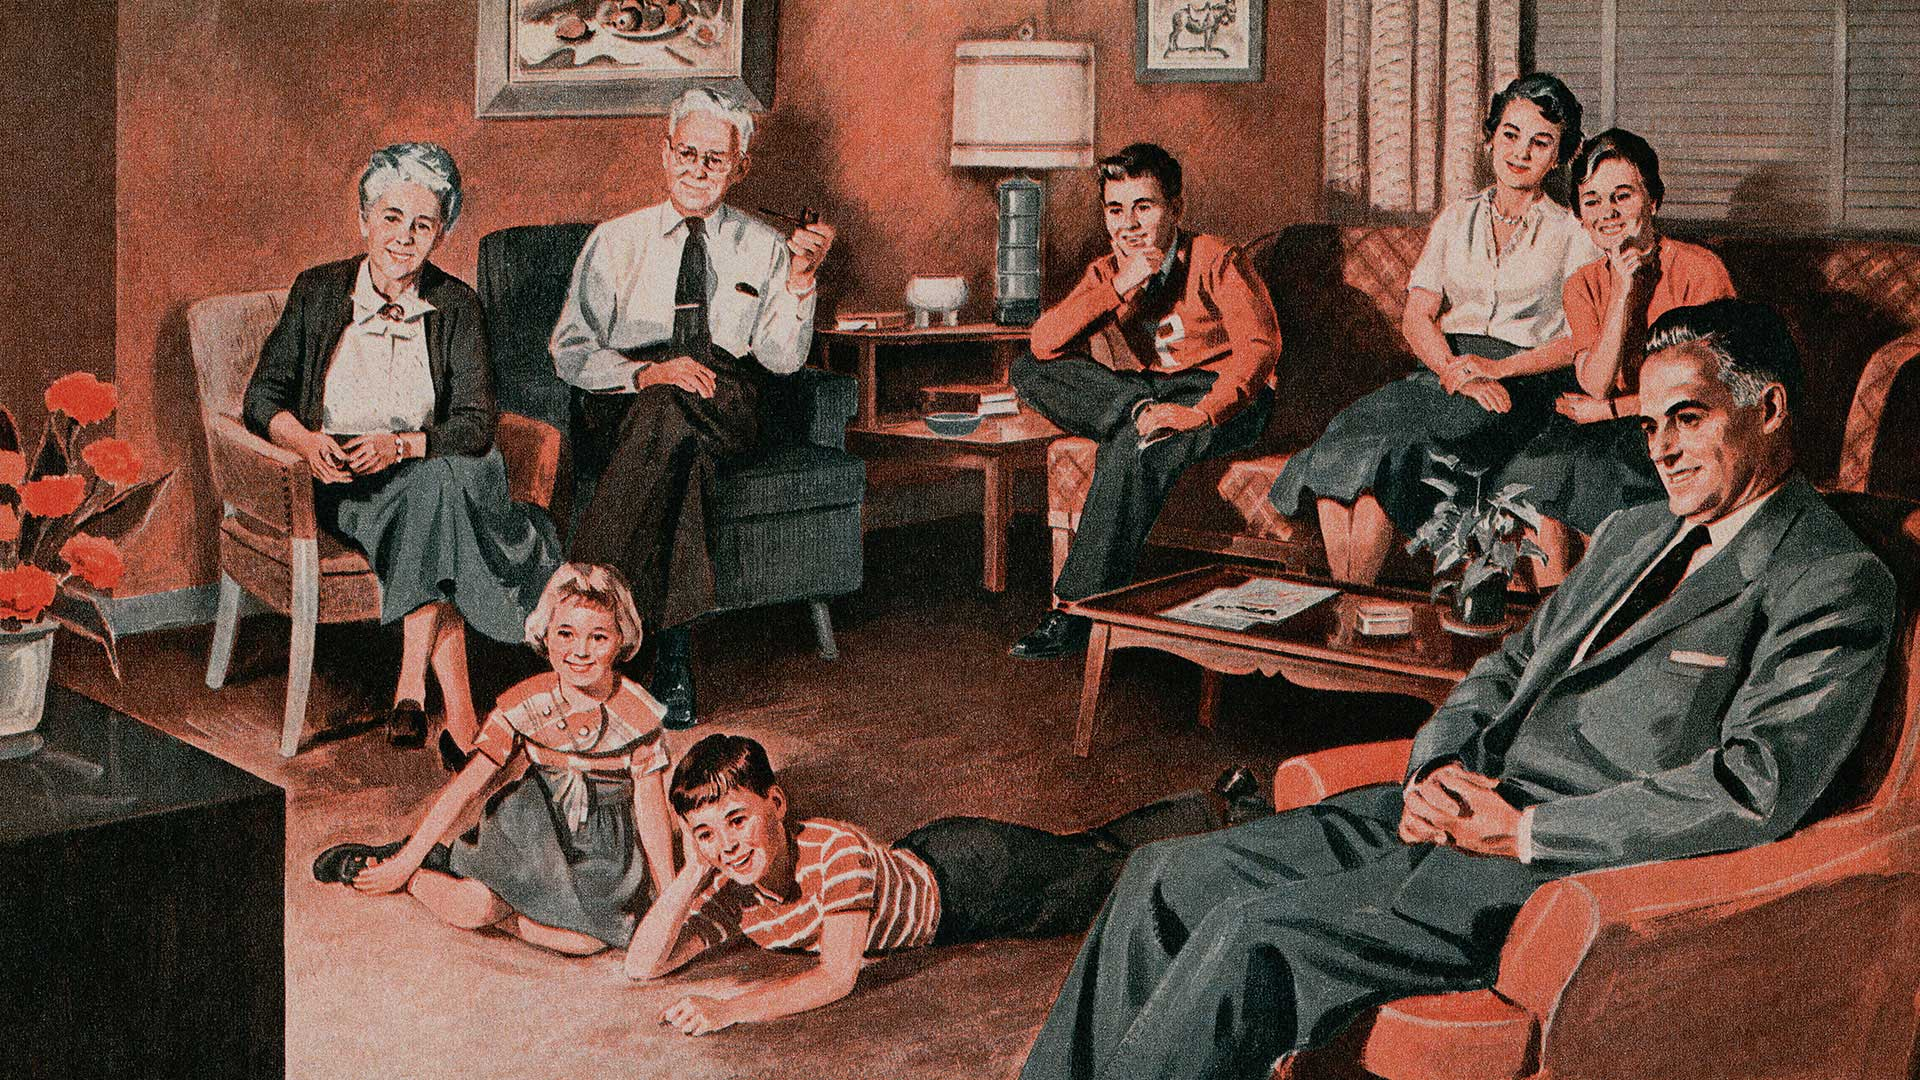 Vintage illustration of three generations of an American family watching television, 1956.